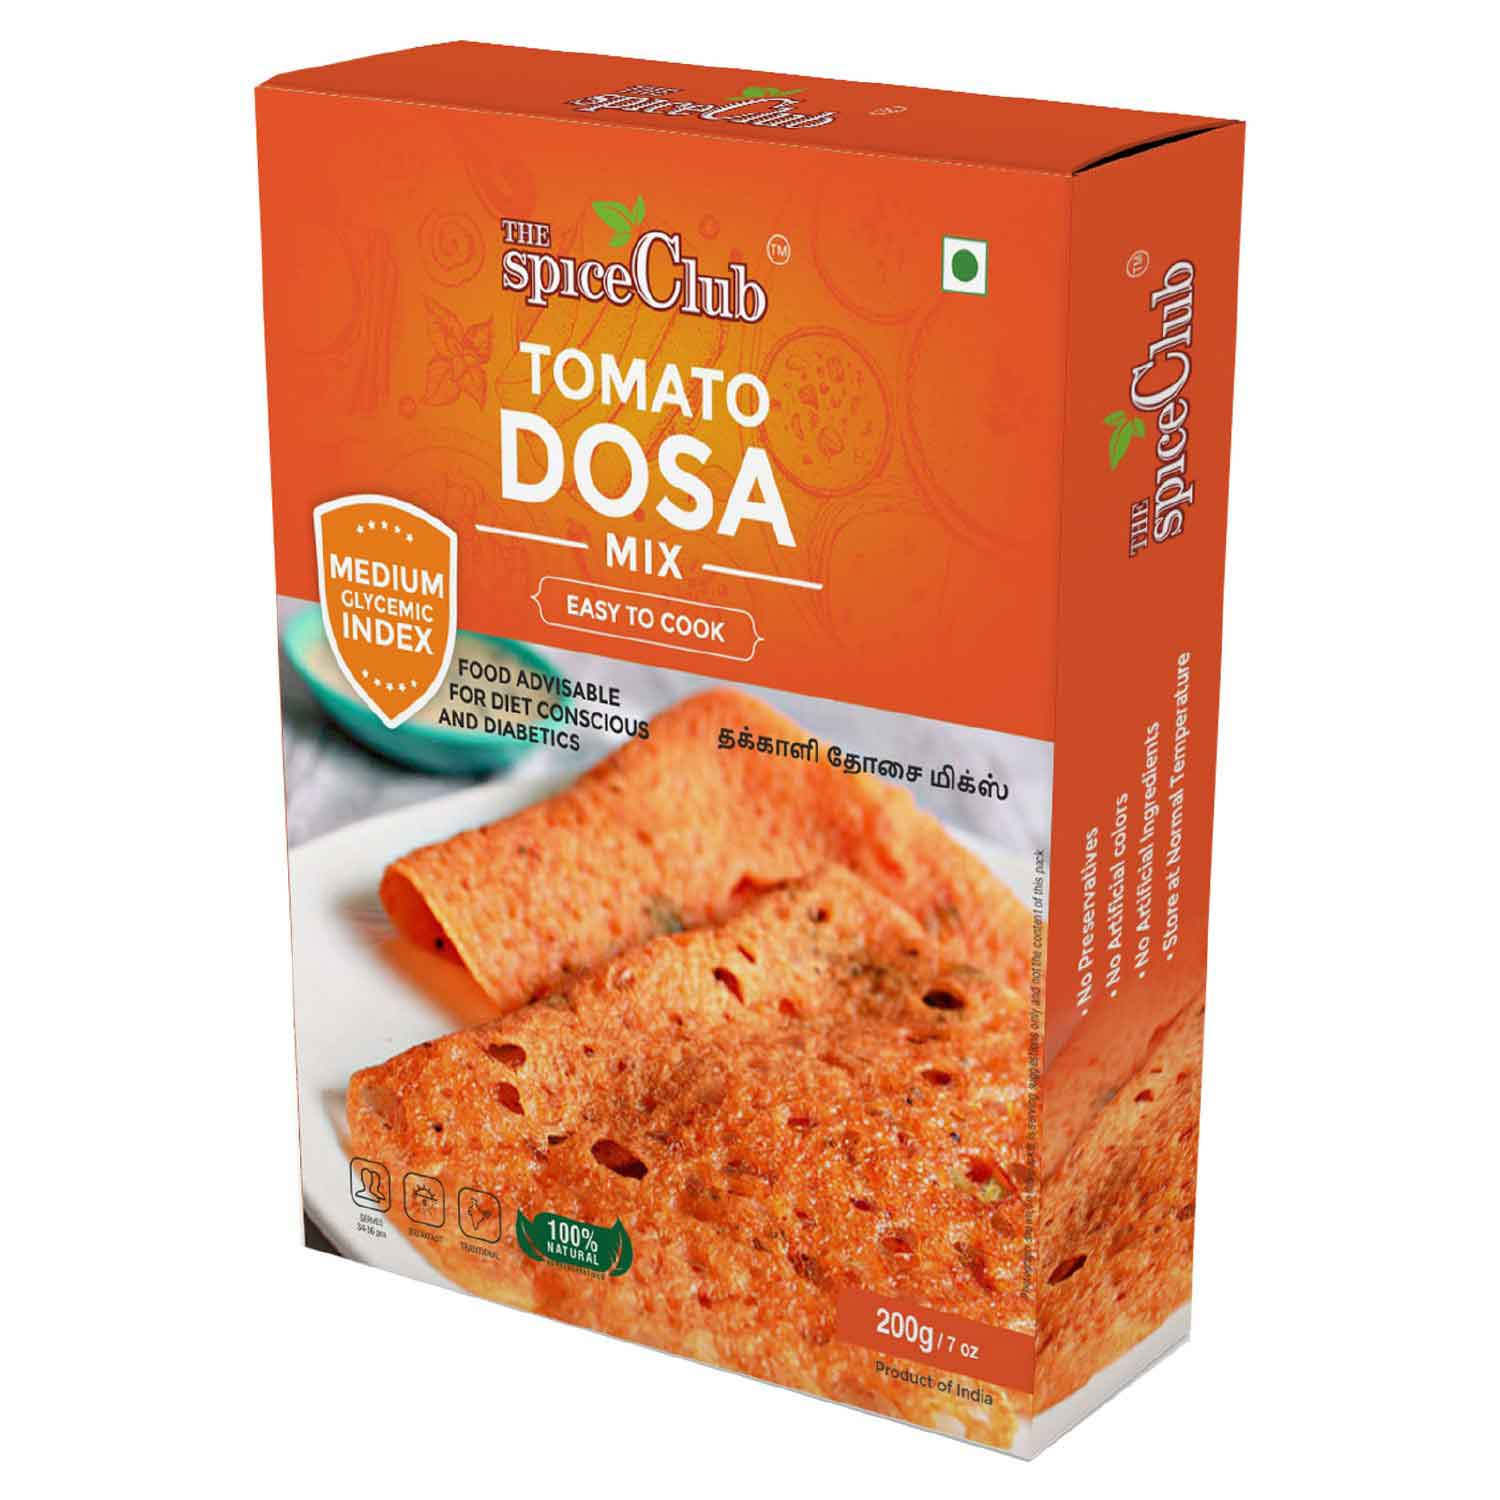 Tomato Dosa Mix With Brown Rice  – 100% Natural, No Preservatives, Medium GI, Easy to Cook